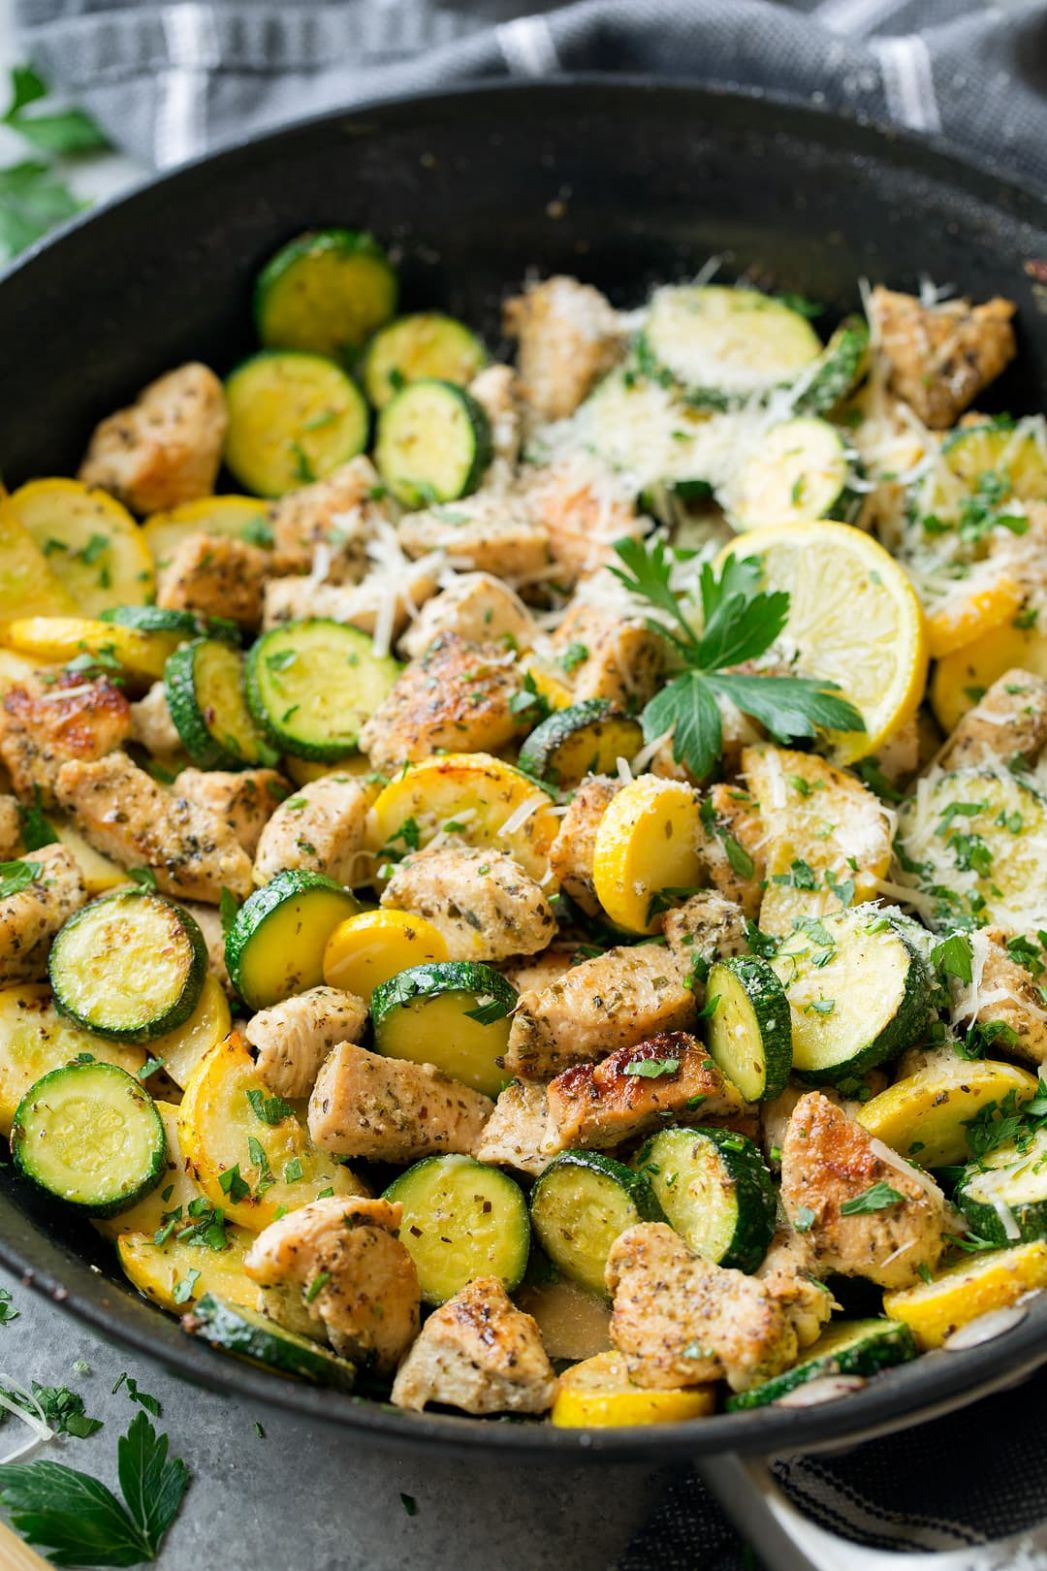 Skillet Lemon Parmesan Chicken with Zucchini - Cooking Classy - Recipes Chicken Breast Squash Zucchini